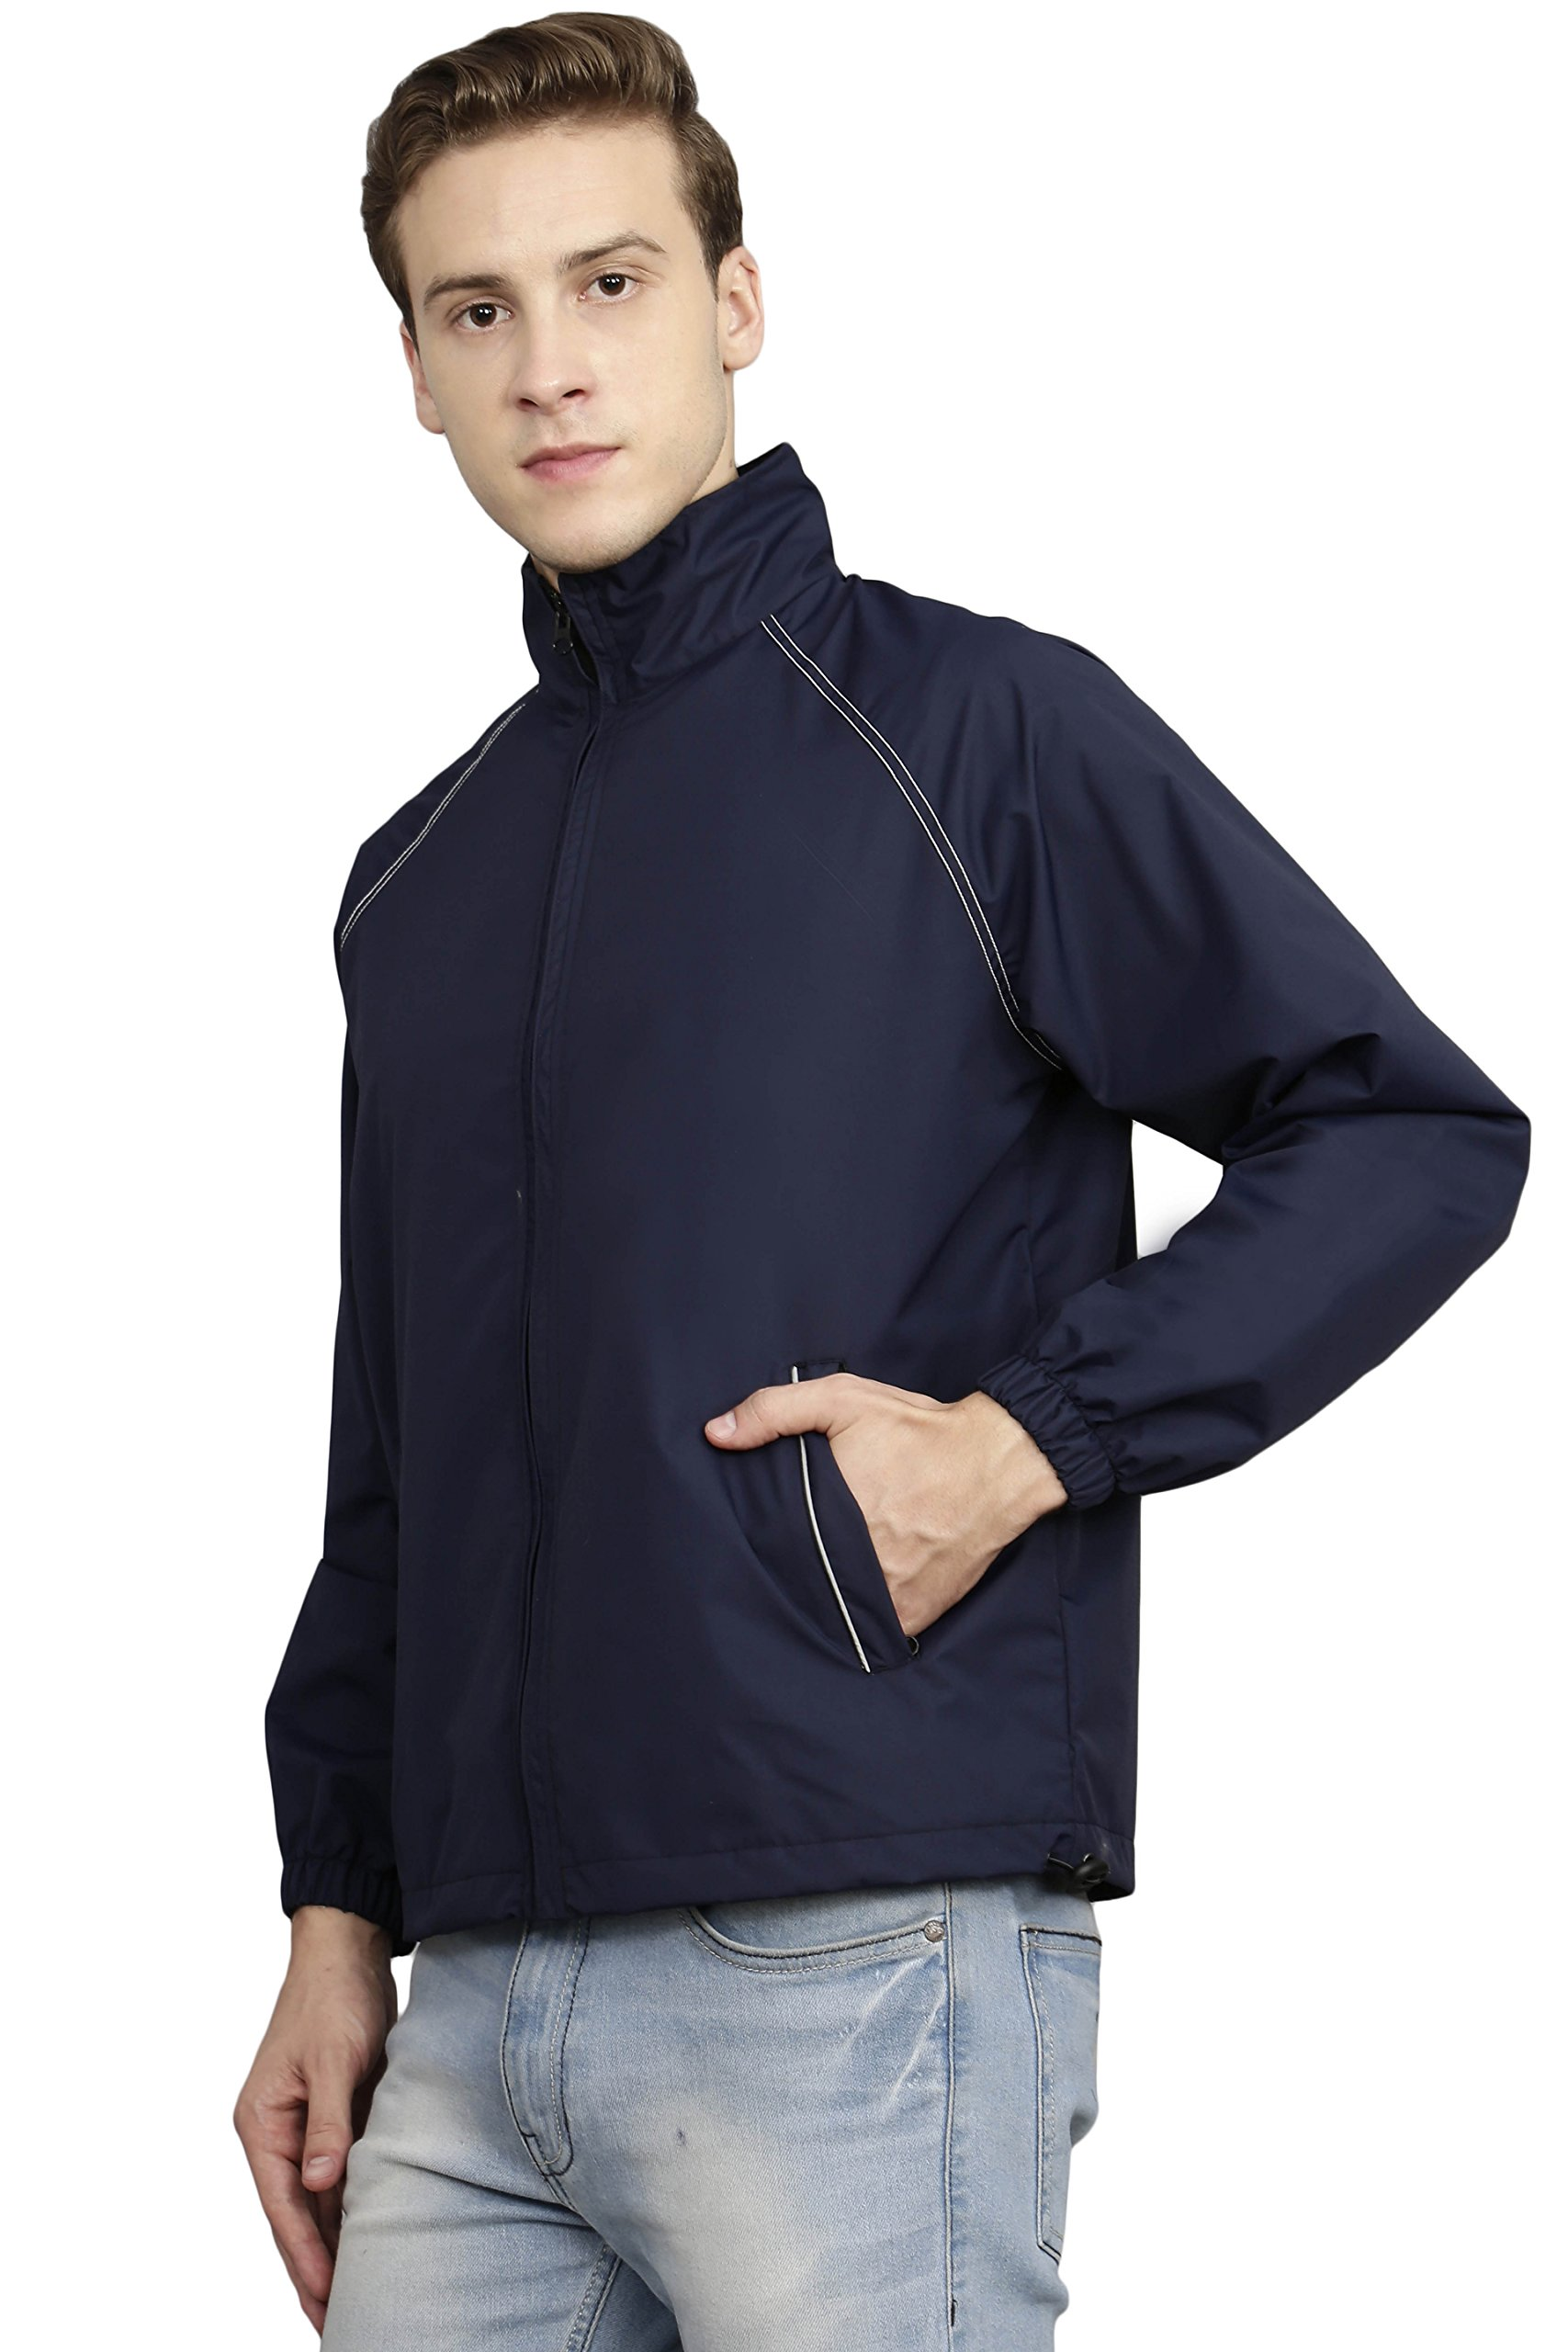 cd525fa6d VERSATYL- Feather-2.0 100% Water Proof Stylish Jacket for Men ...